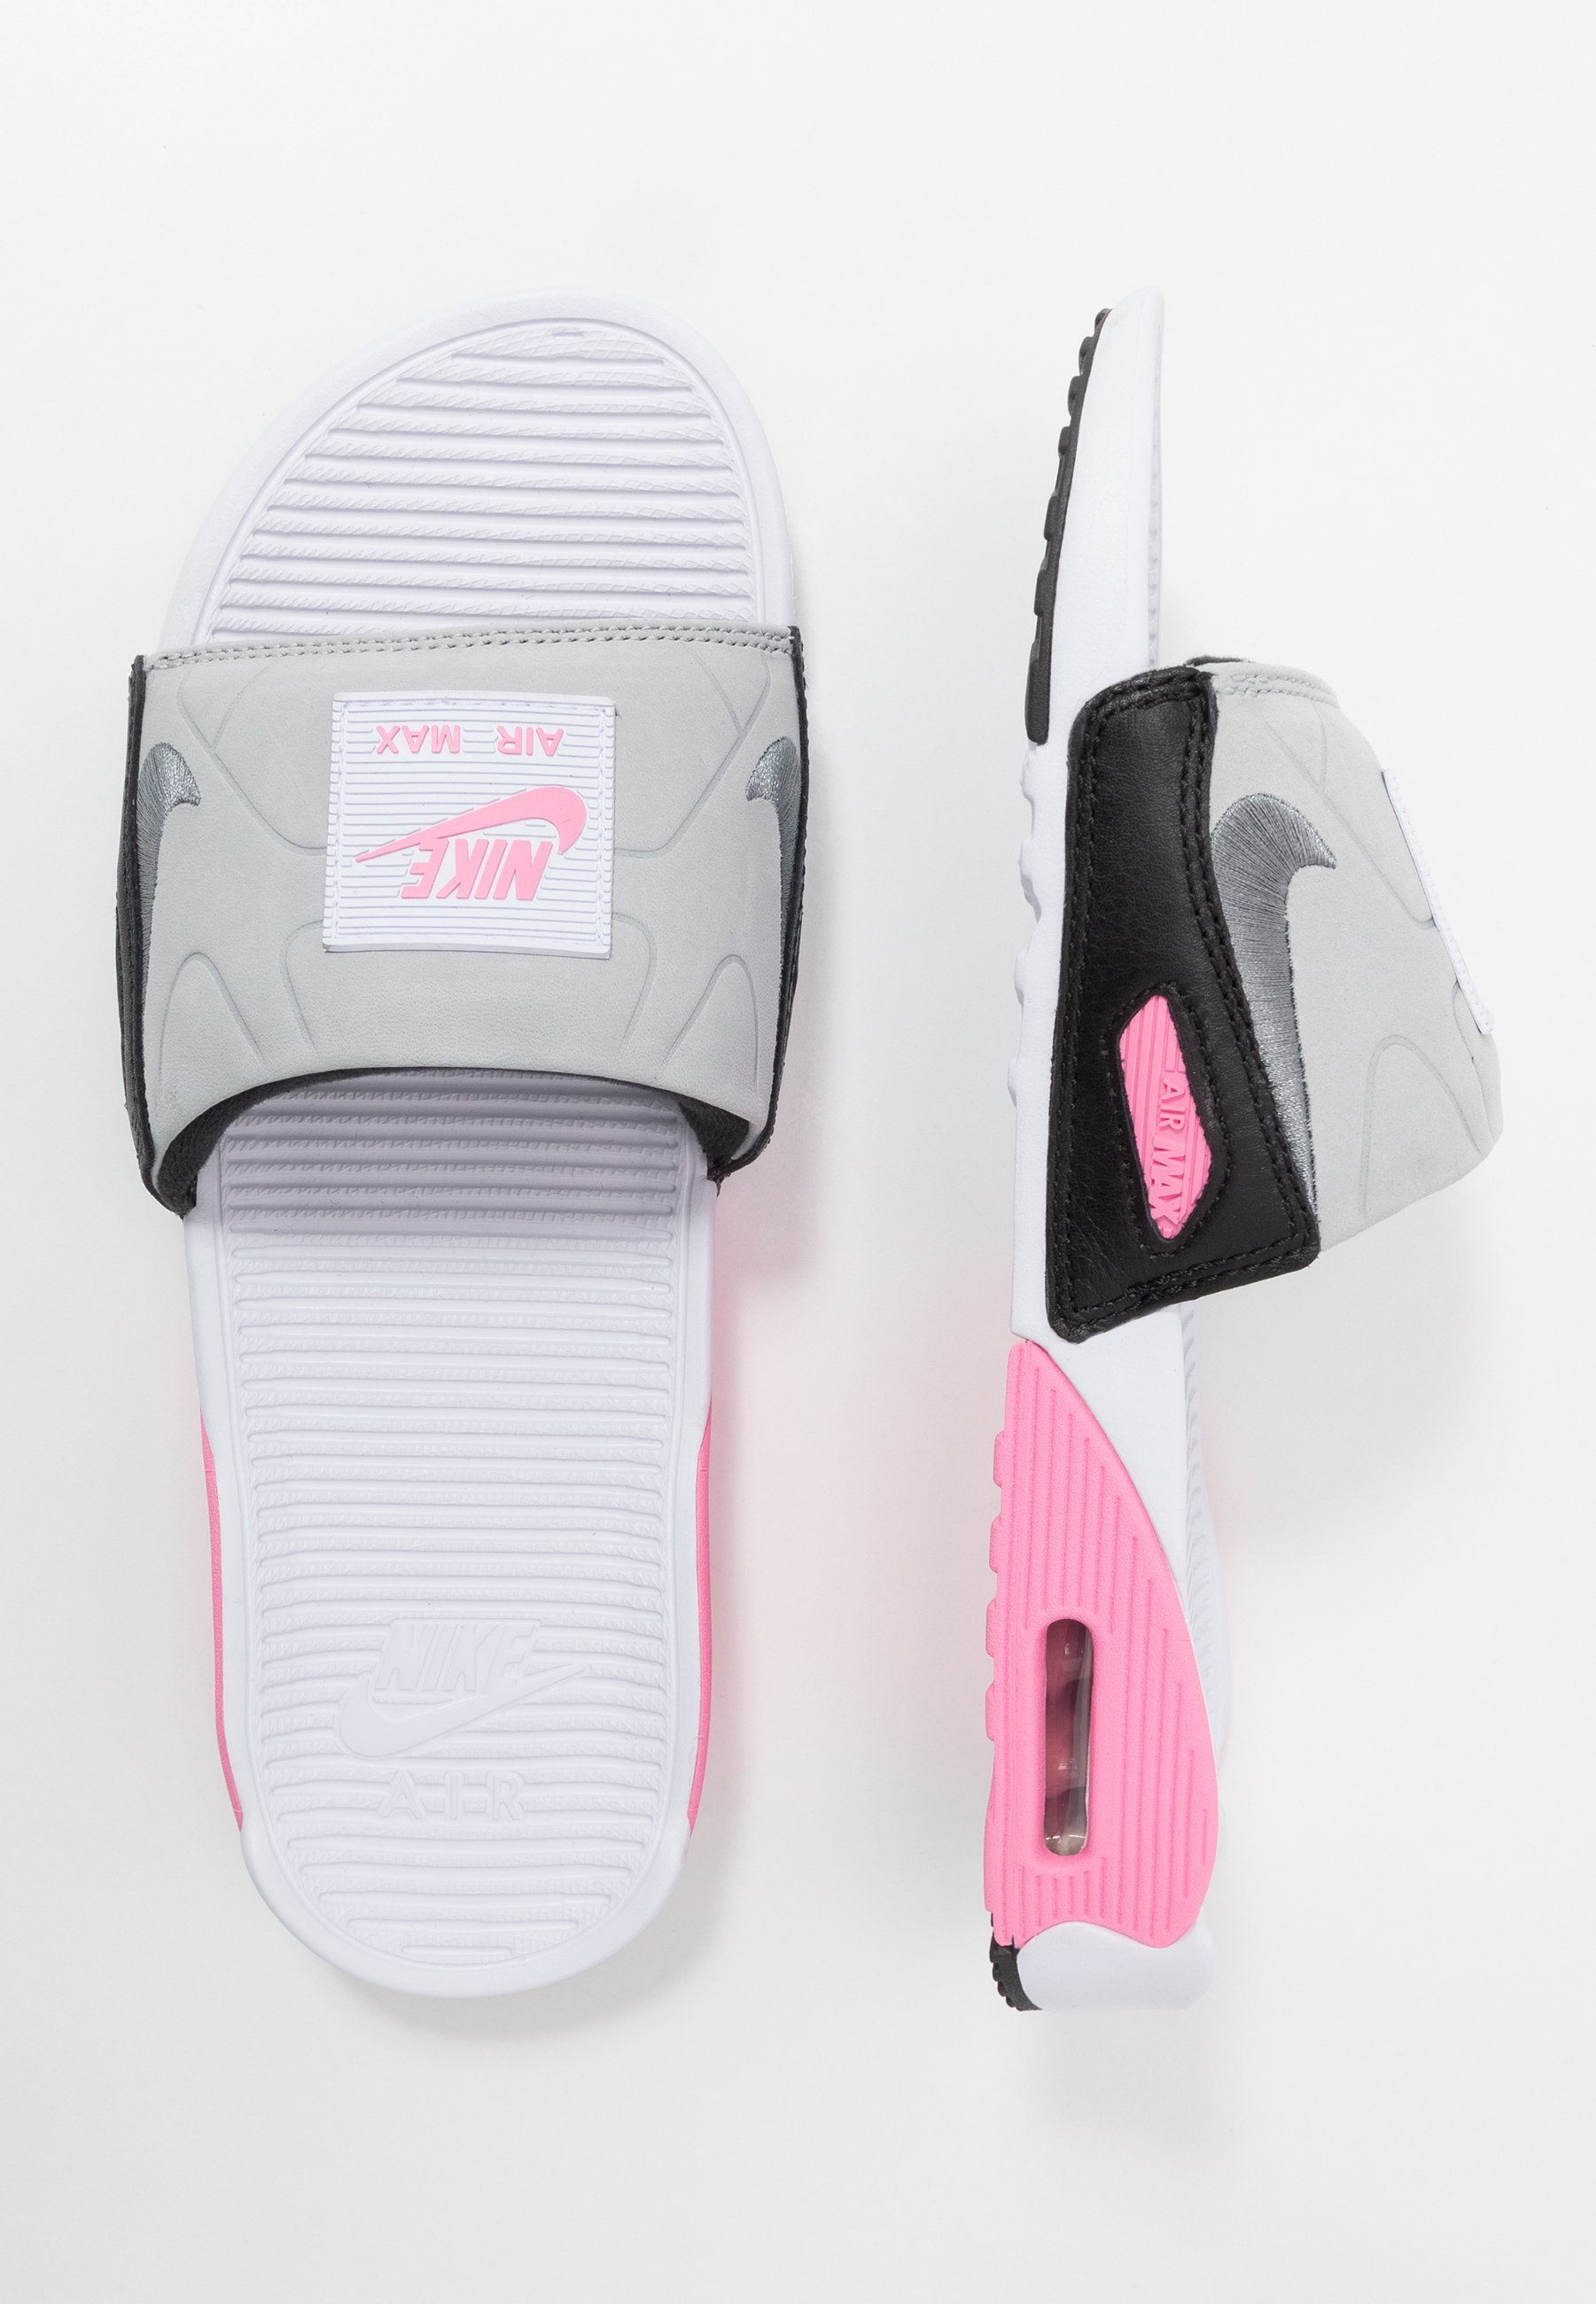 Nike Sportswear Air Max 90 Slide - Pantolette Flach White/cool Grey-rose-pure Platinum-black Black Friday